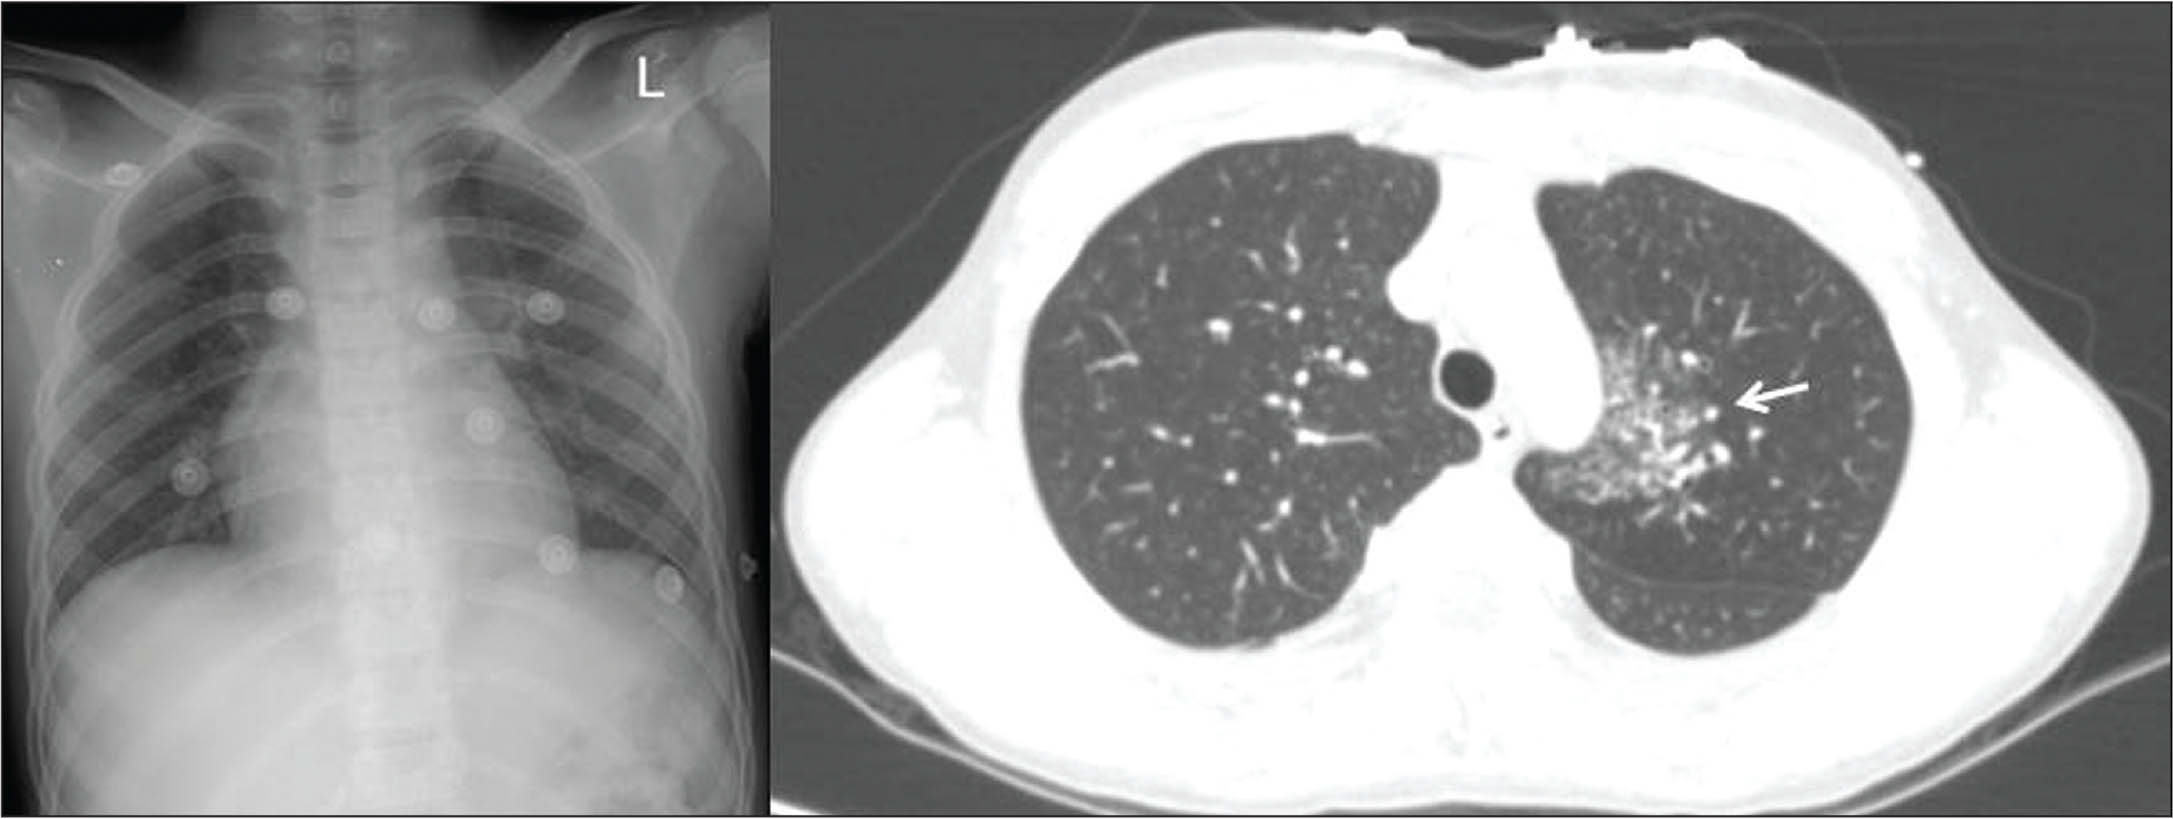 (A) Chest radiograph is clear. Note the eight external monitor leads on the chest. (B) Chest computed tomography scan shows dense consolidations (arrow) in the left lung.